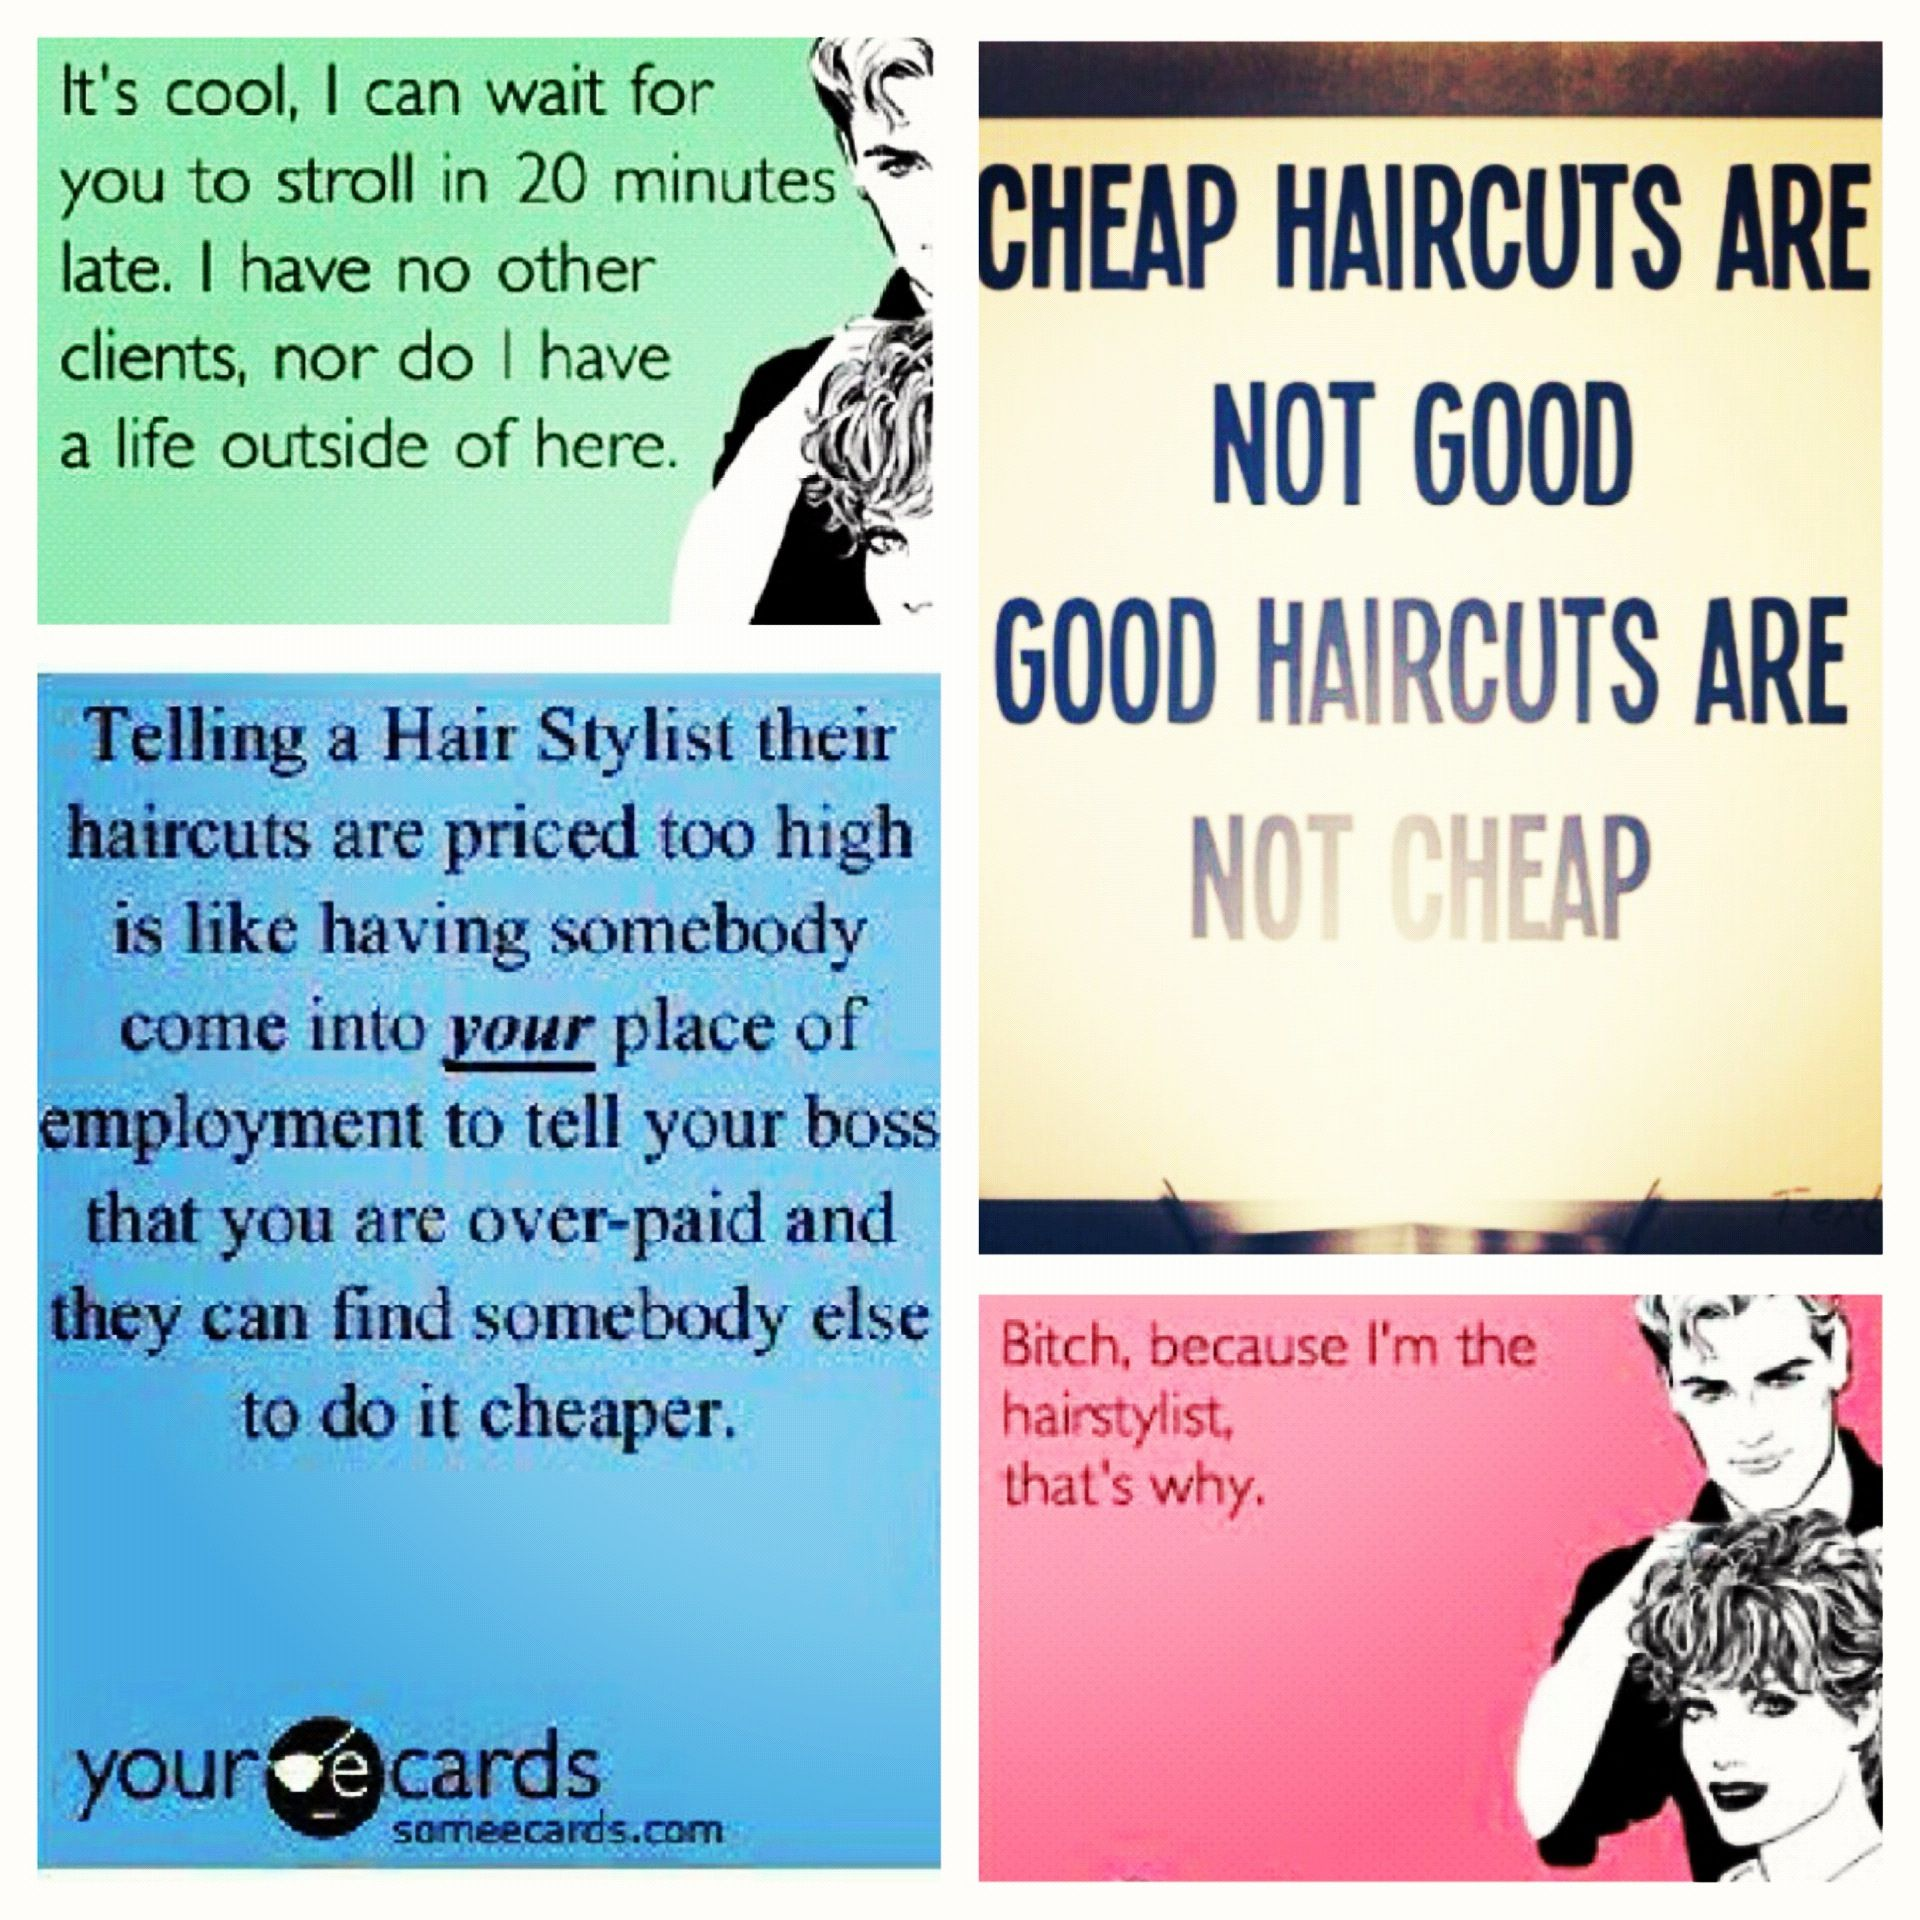 Every hairstylist would agree Beauty Pinterest